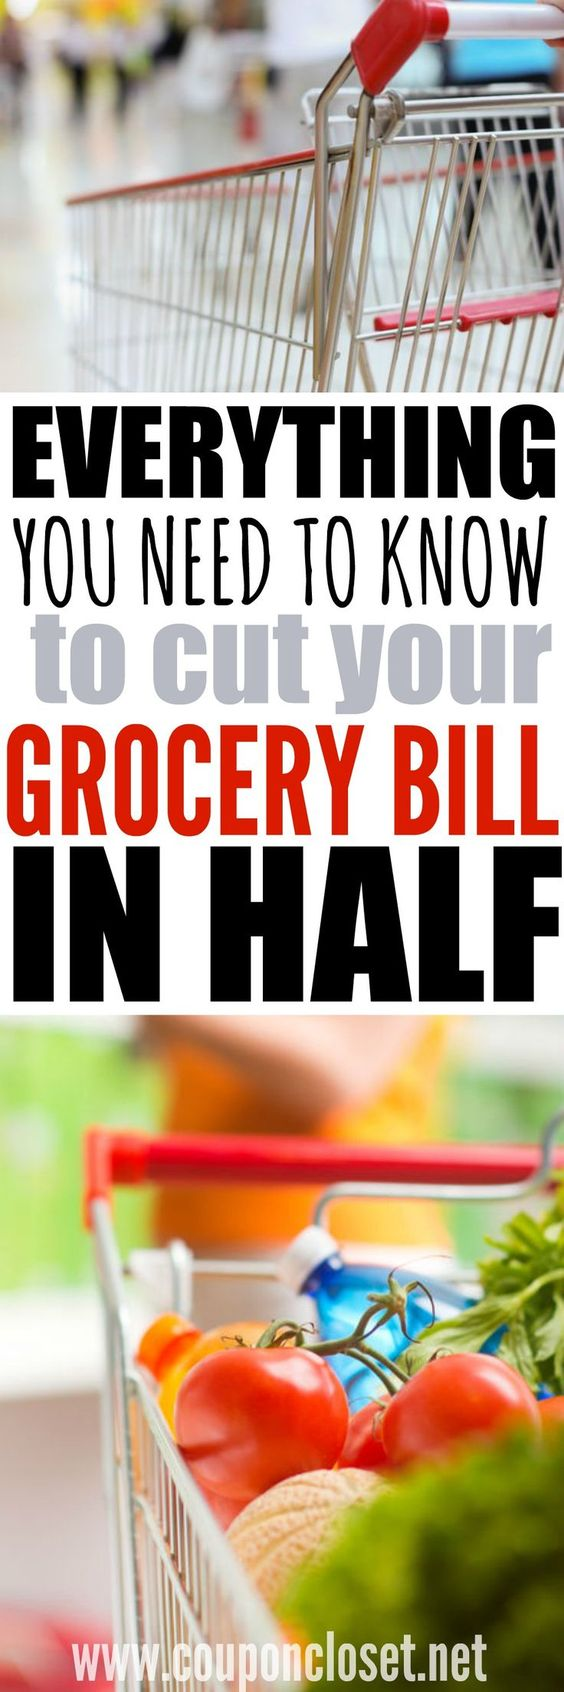 Do you wish you could cut your grocery bill in half? Saving Money on groceries isn't has hard as you might think. I give you the best tips you need to truly save money.